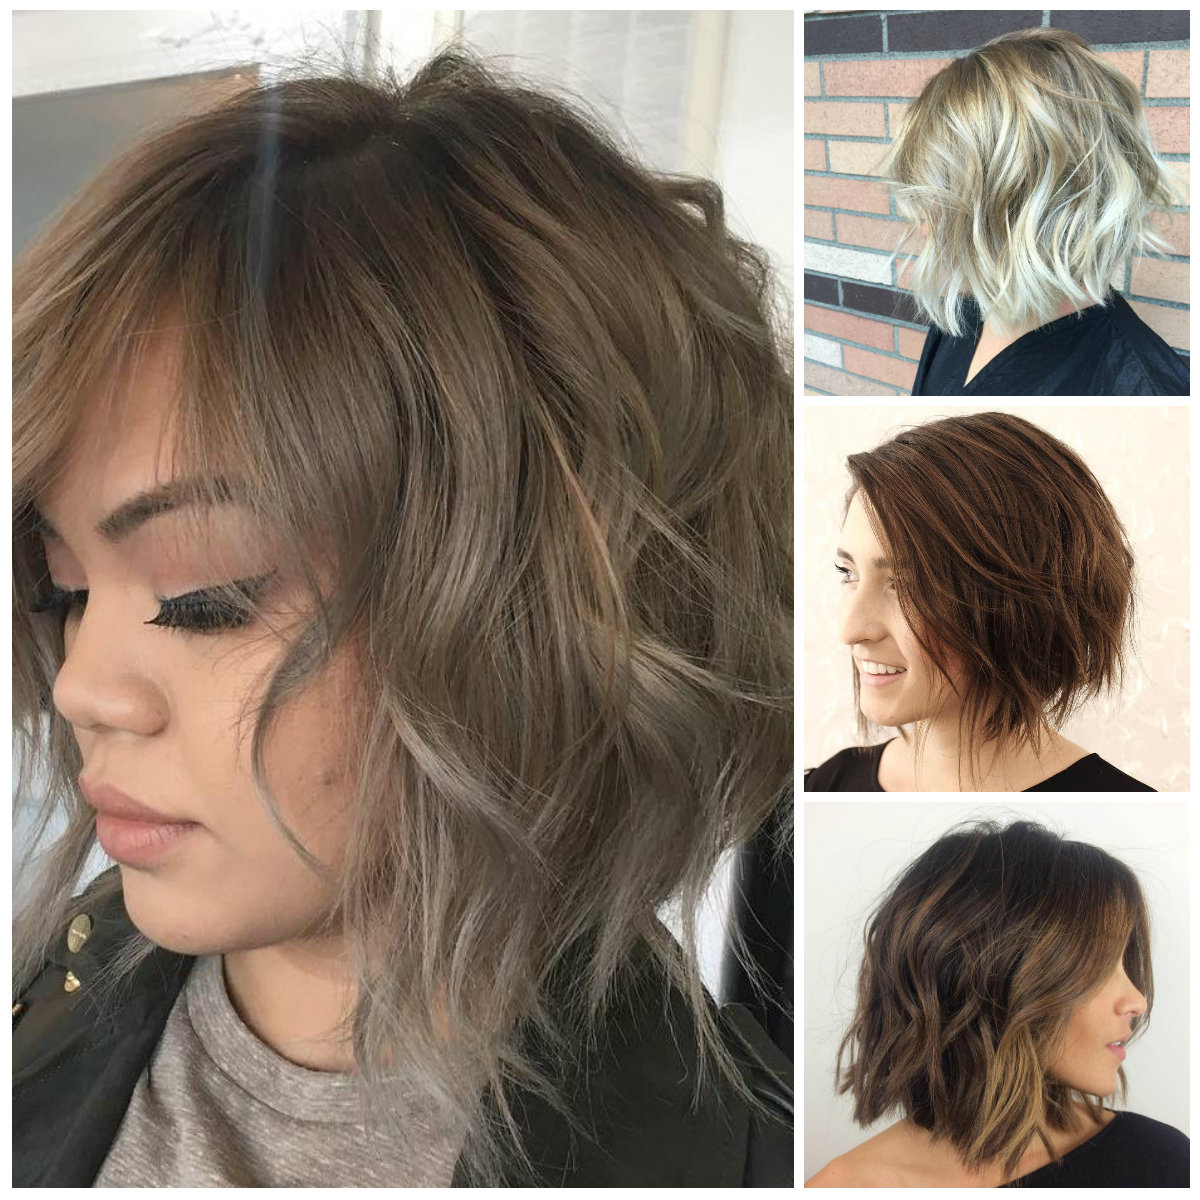 Casual Short Messy Hairstyles For Females | 2019 Haircuts In Short Messy Hairstyles With Twists (View 15 of 20)